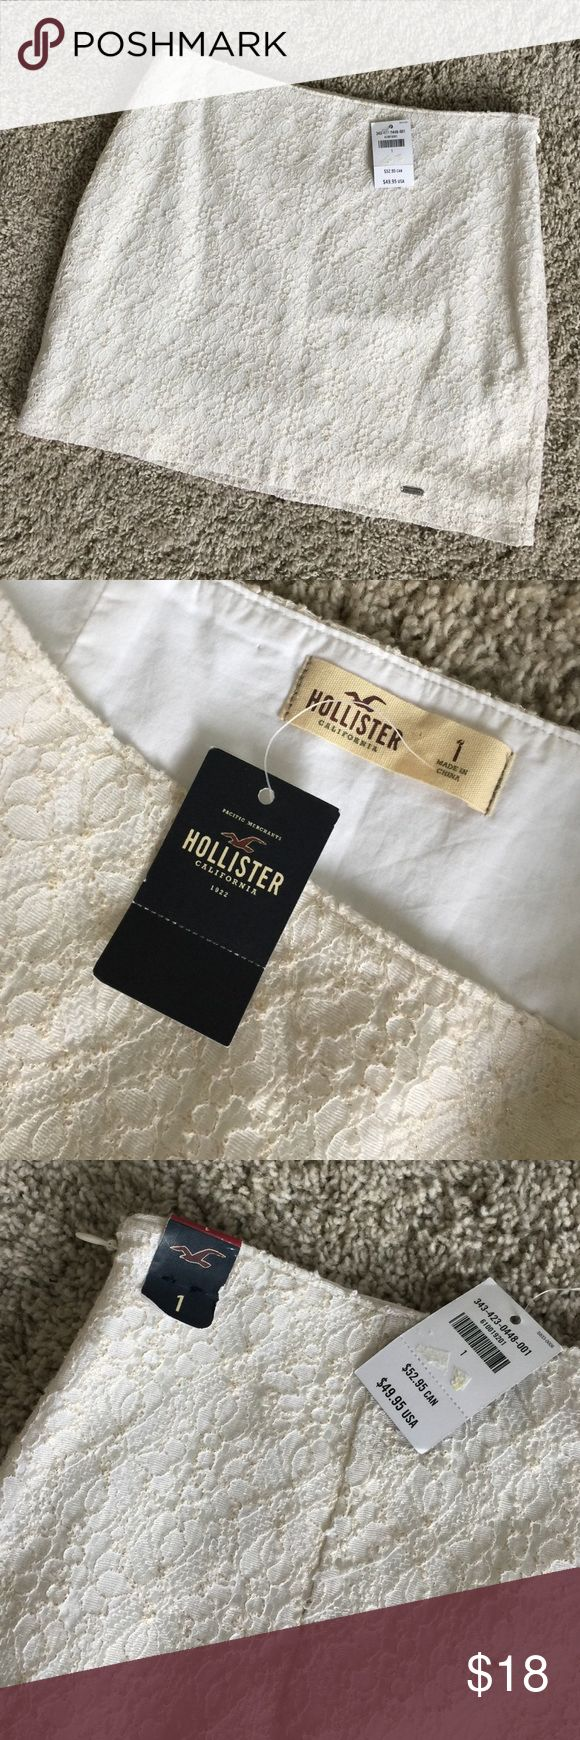 "New Hollister Gold/Off White Lace Mini Skirt Sz 1 Brand new with tags Hollister mini skirt. Off white and gold lace. Lined. Hidden side zipper. Approx. 13.75 across waist, lying flat; 14.25"" waist to bottom hem. Hollister Skirts Mini"